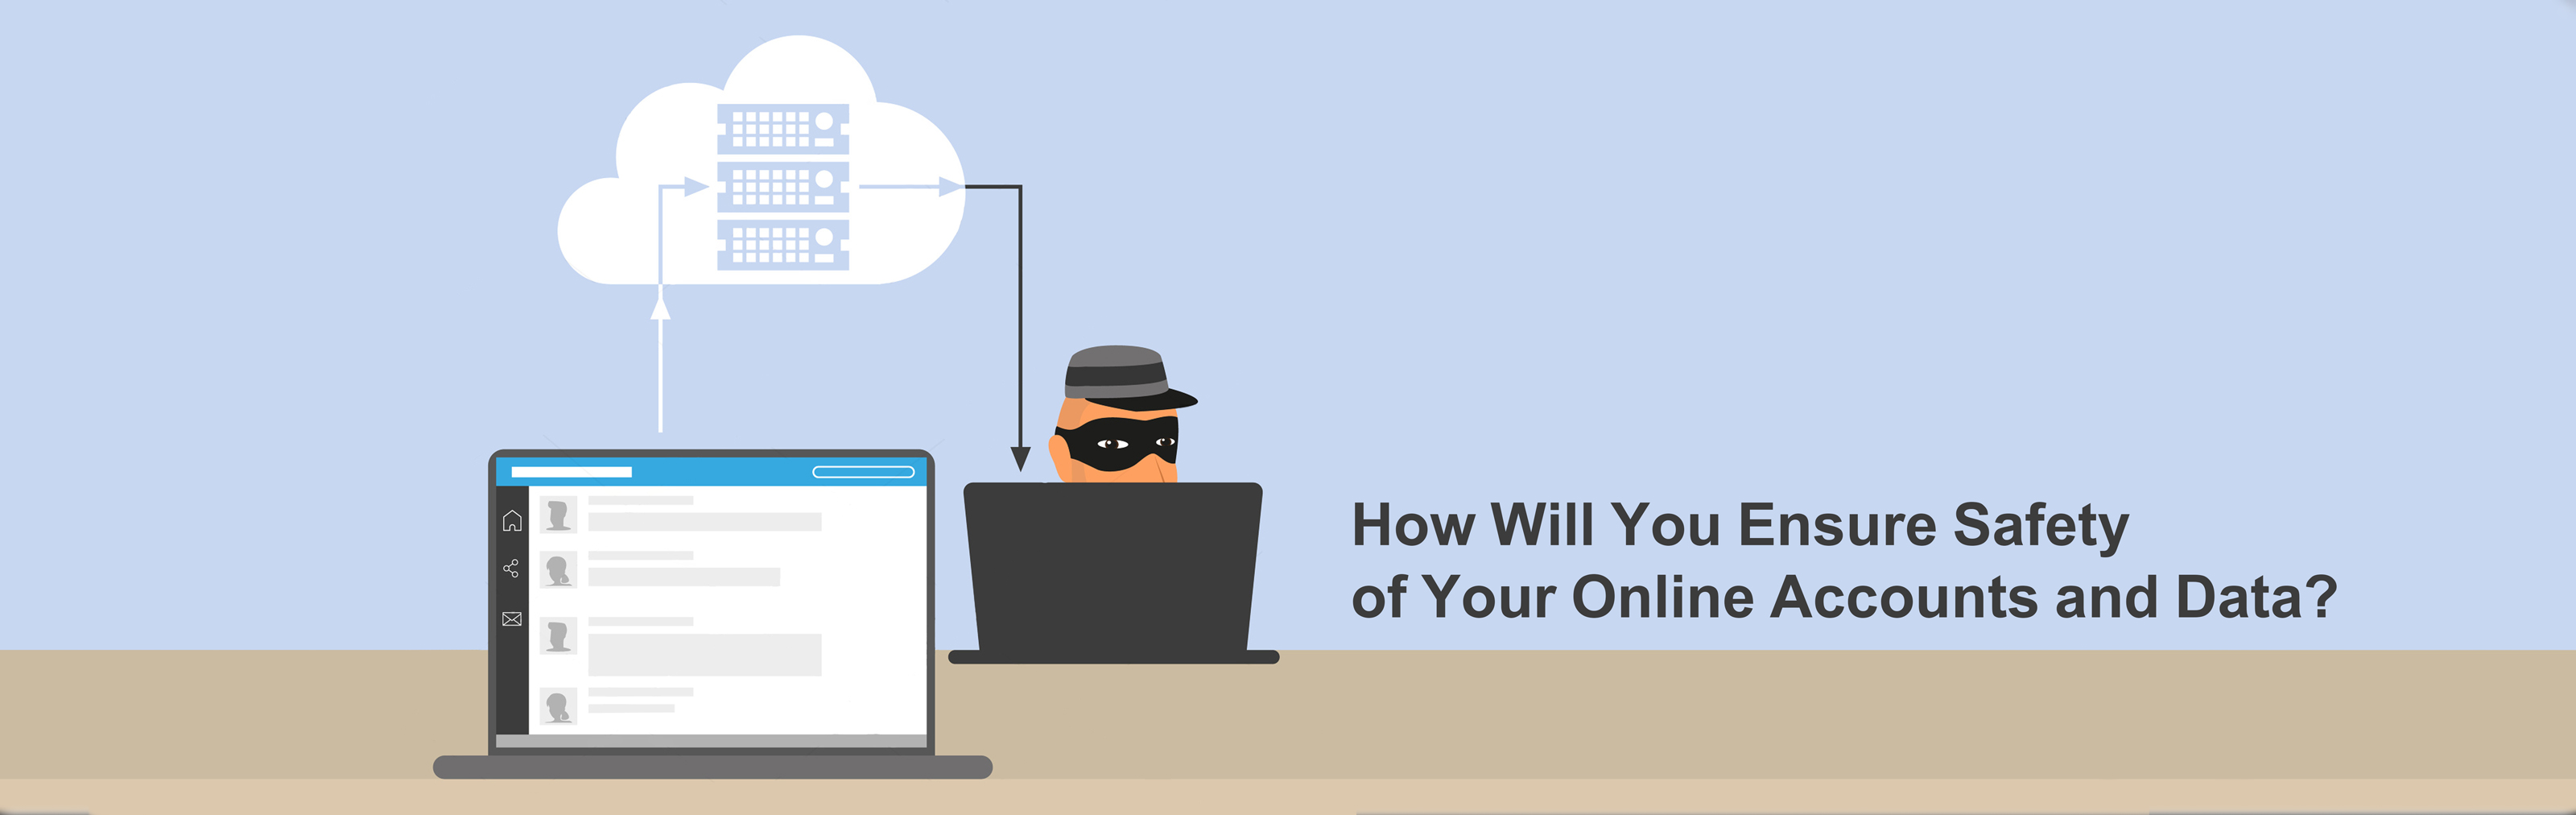 How Will You Ensure Safety of Your Online Accounts and Data